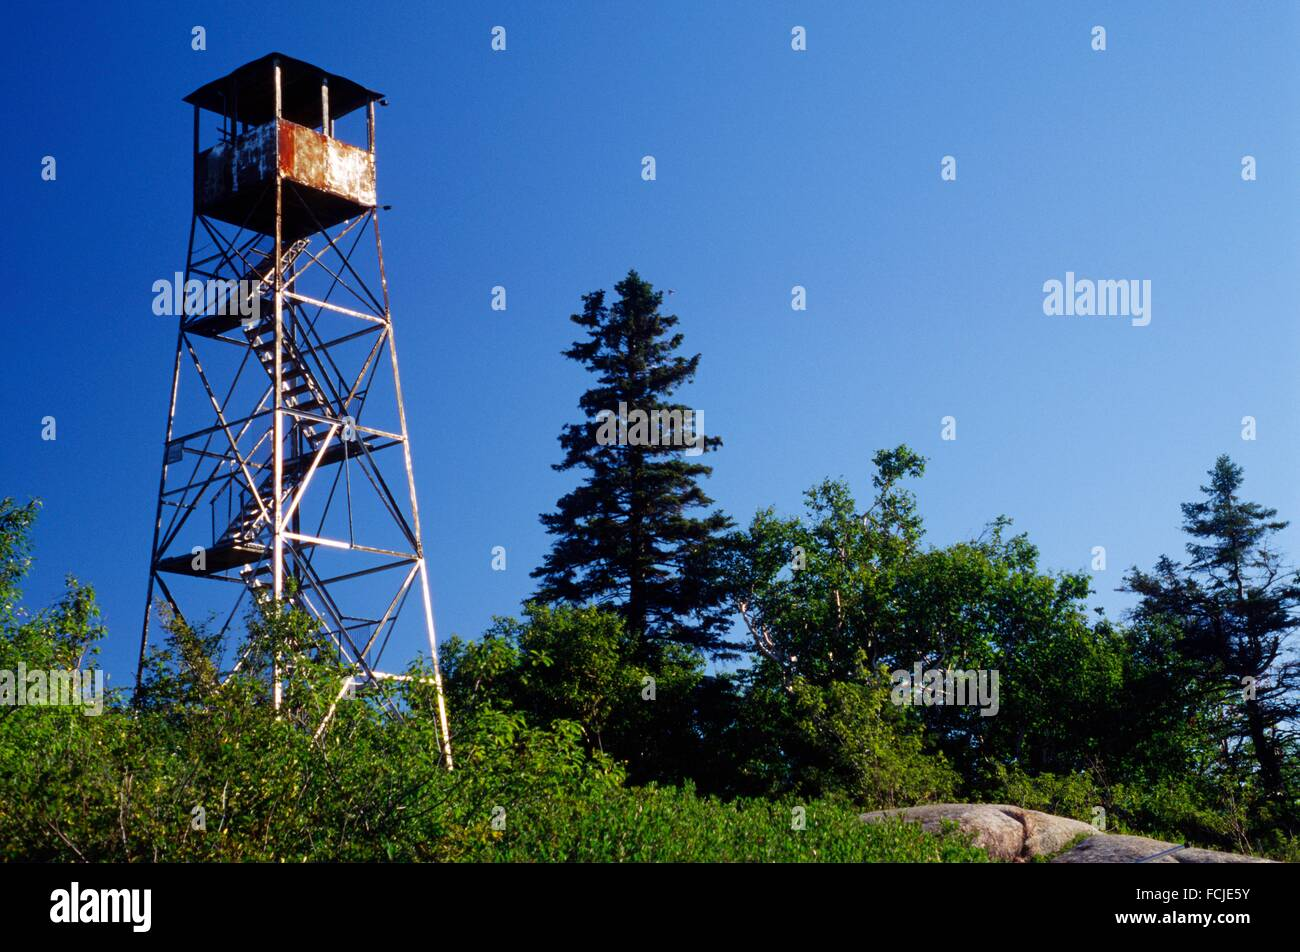 Lookout on Poke-O-Moonshine Mountain, Adirondack Park, New York. - Stock Image